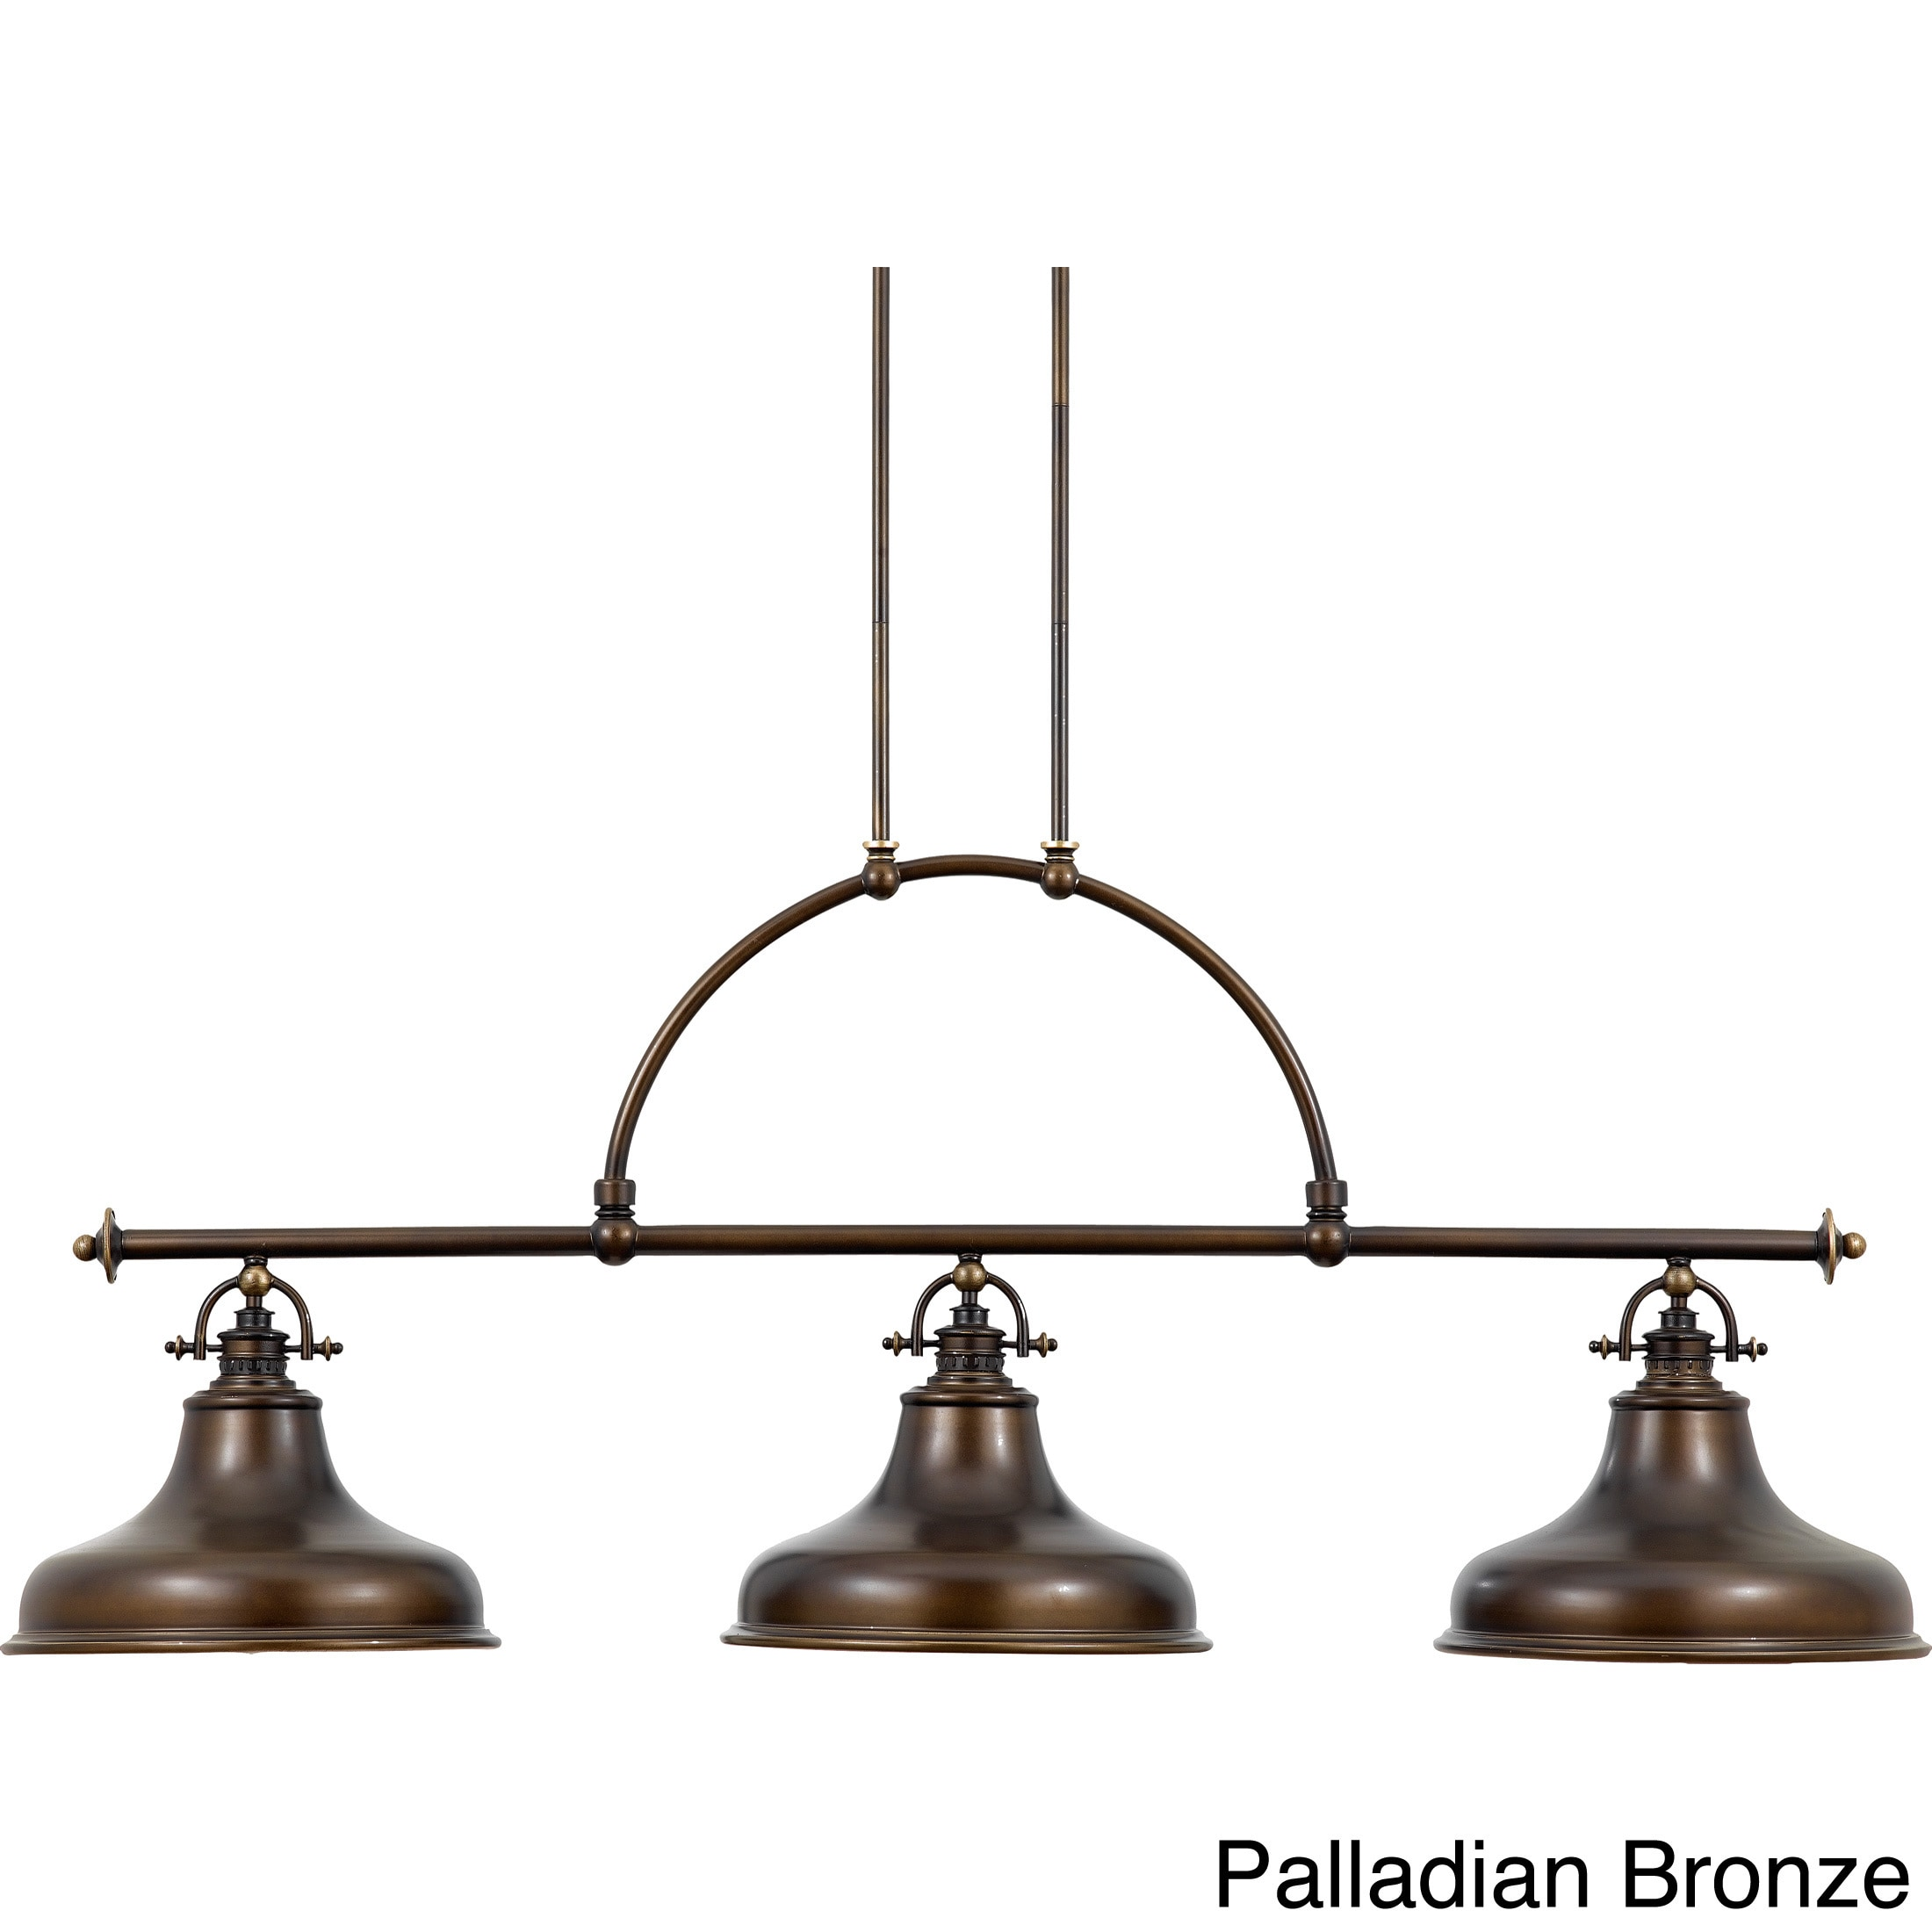 Quoize emery 3 light chandelier free shipping today overstock quoize emery 3 light chandelier free shipping today overstock 15882862 aloadofball Images